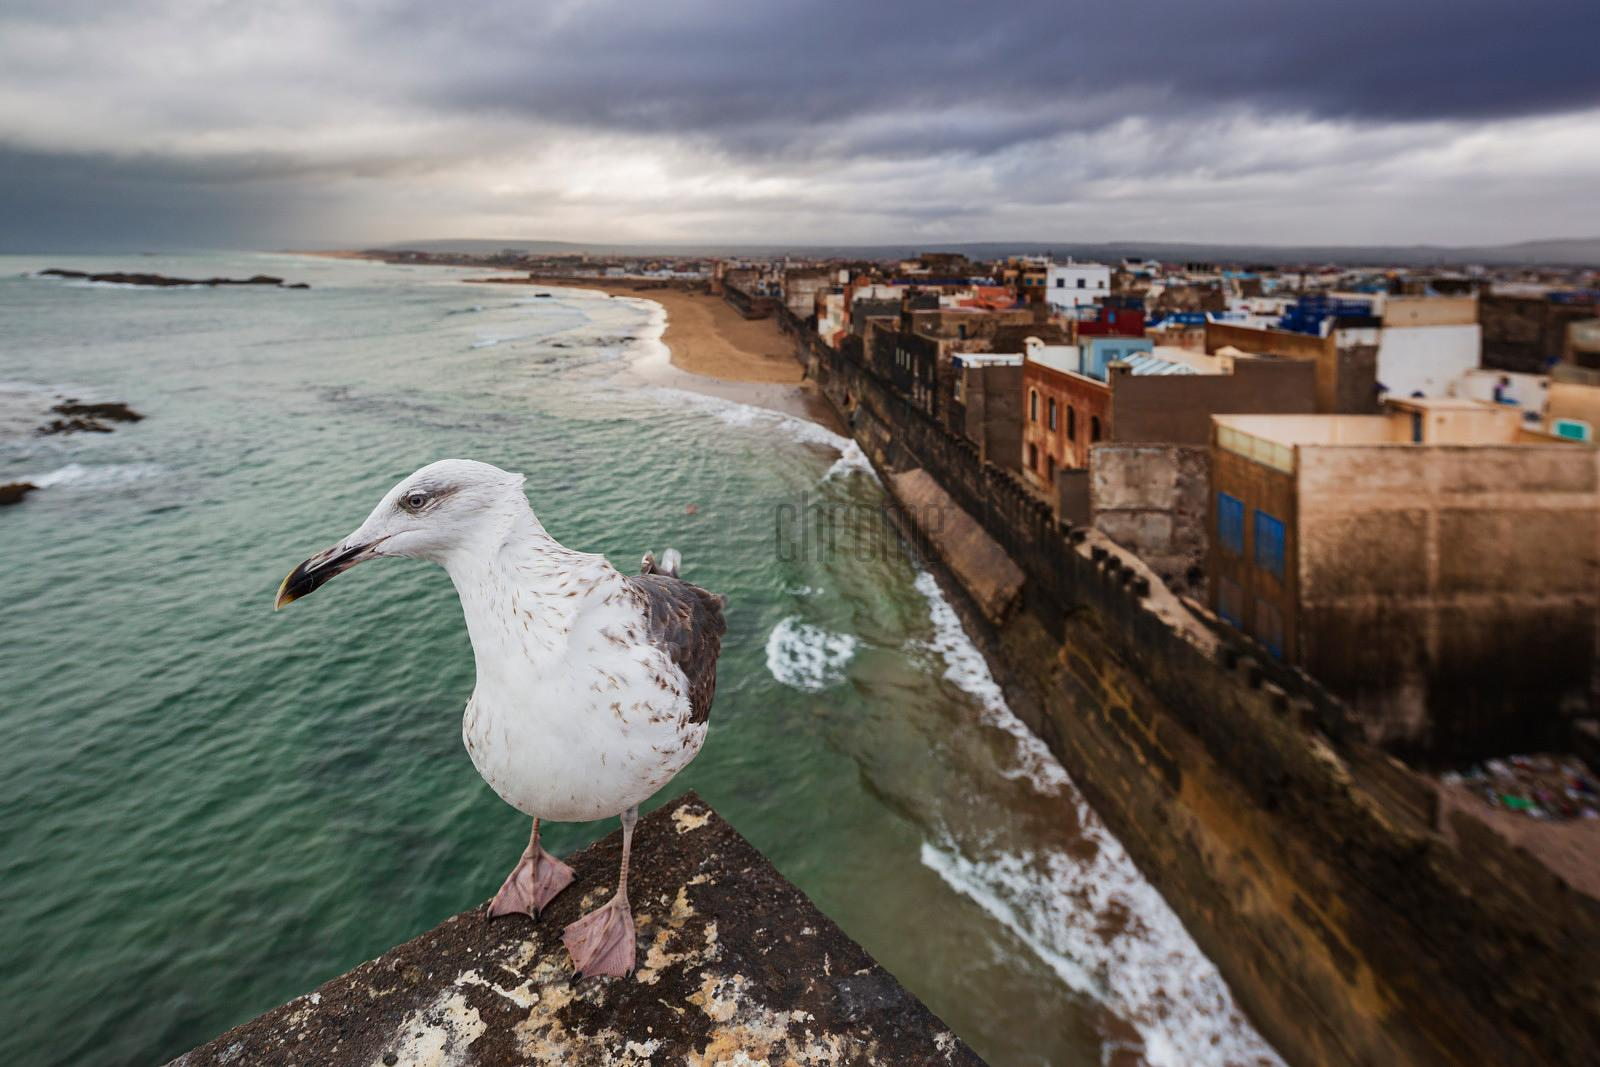 Seagull on a Parapet above the Walled City of Essaouira